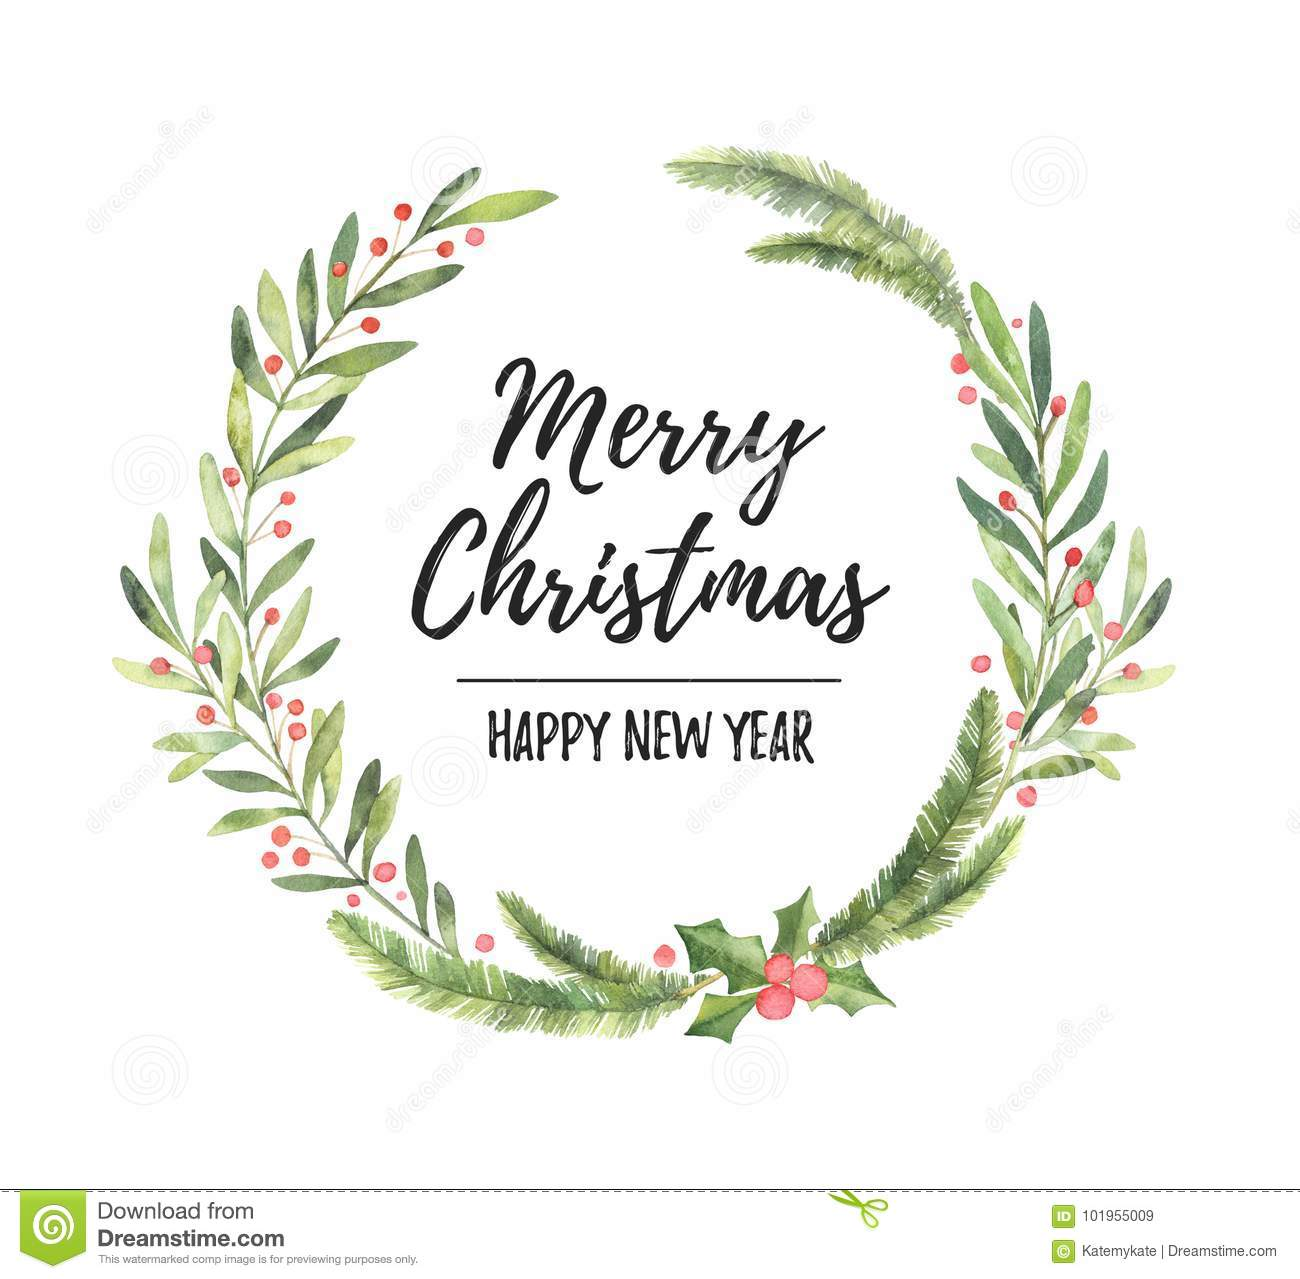 christmas laurel wreath perfect for invitations greeting cards blogs posters and more merry christmas and happy new year - Christmas Blogs